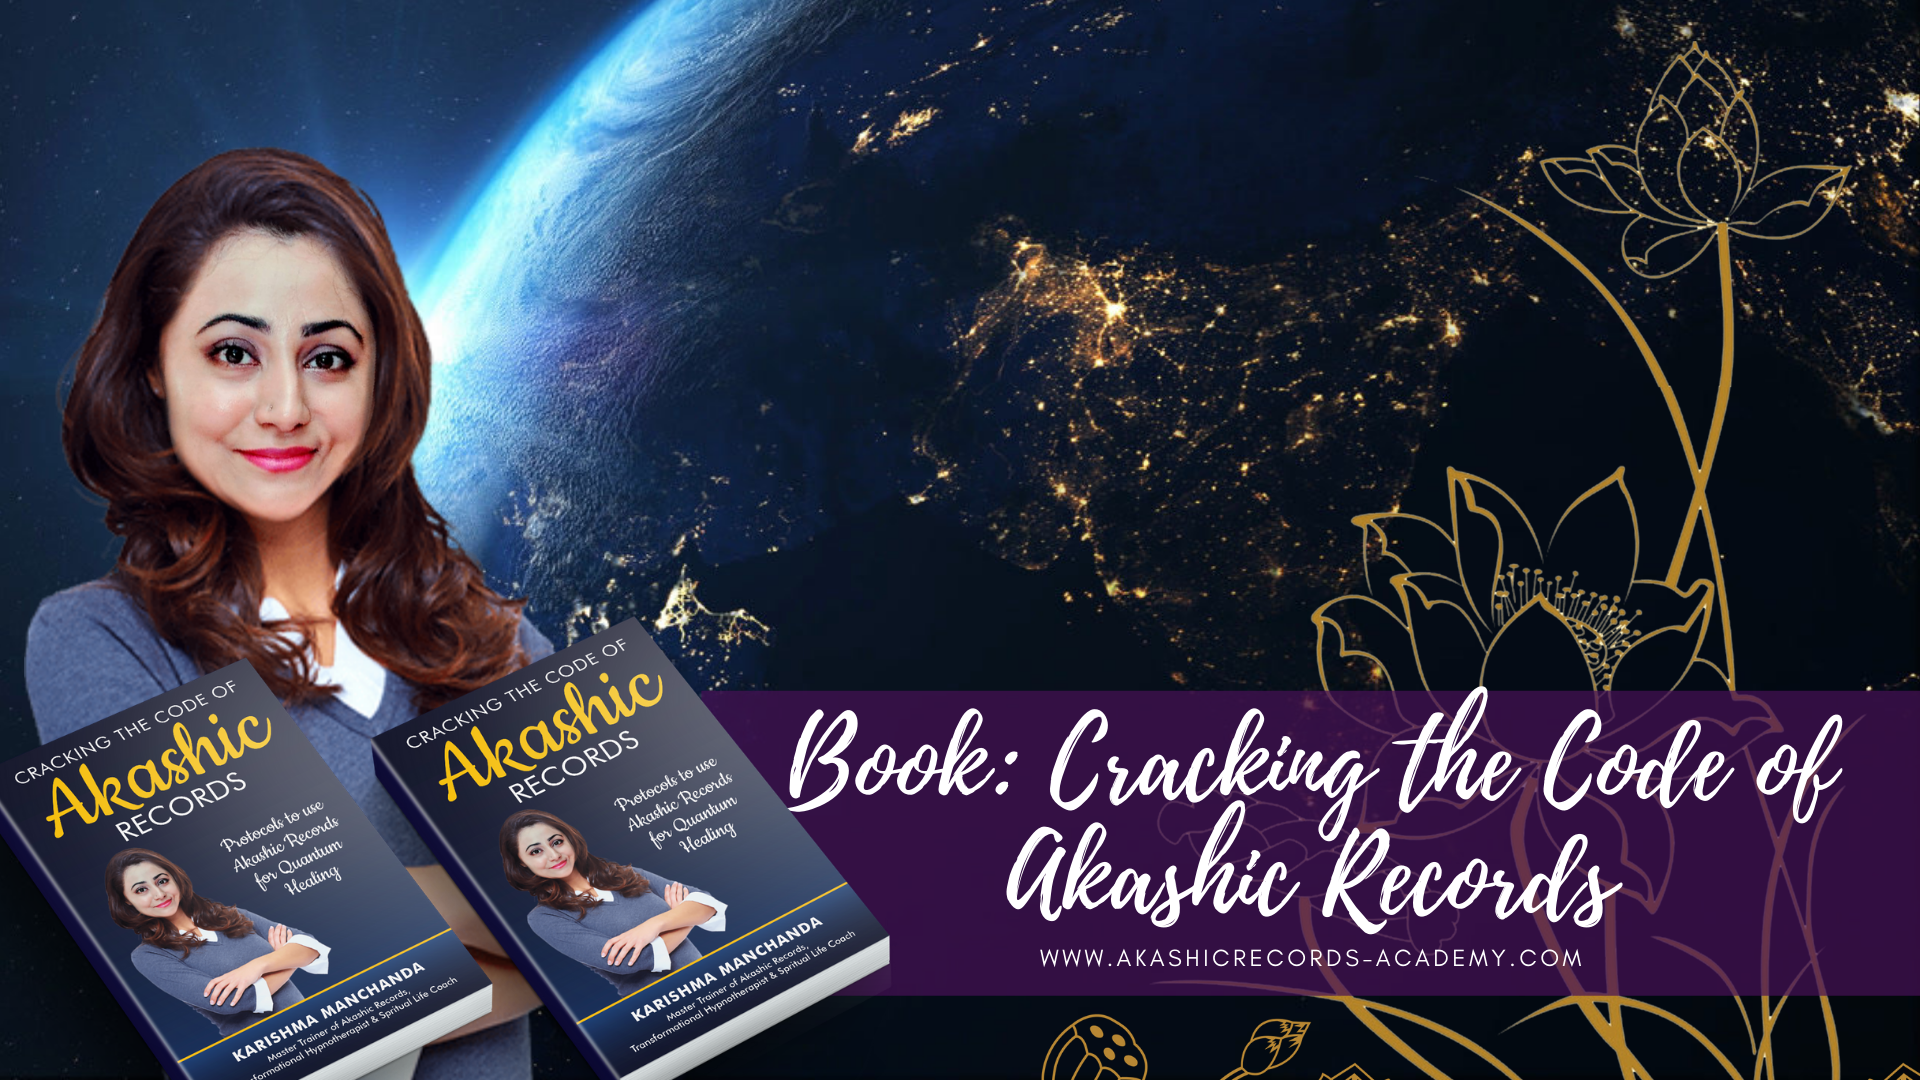 Cracking the Code of Akashic Records Book